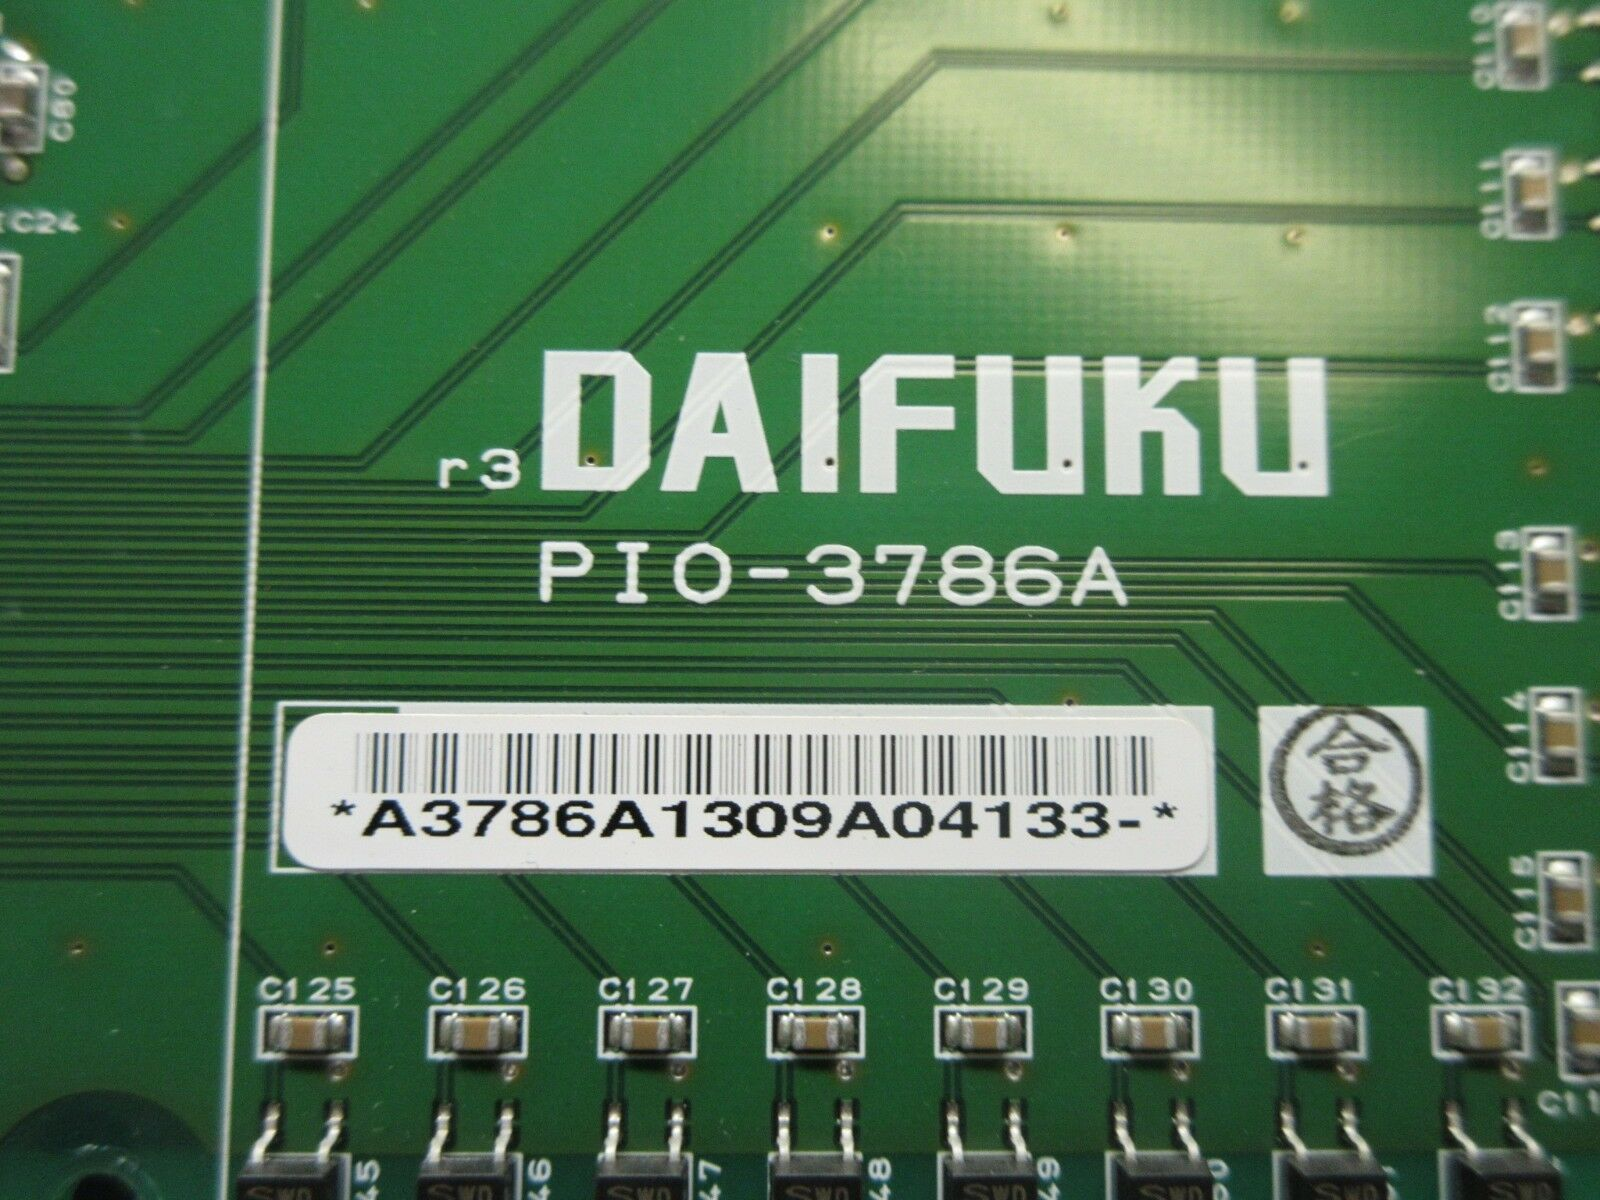 Daifuku PIO-3786A LED Display Board PCB Used Working